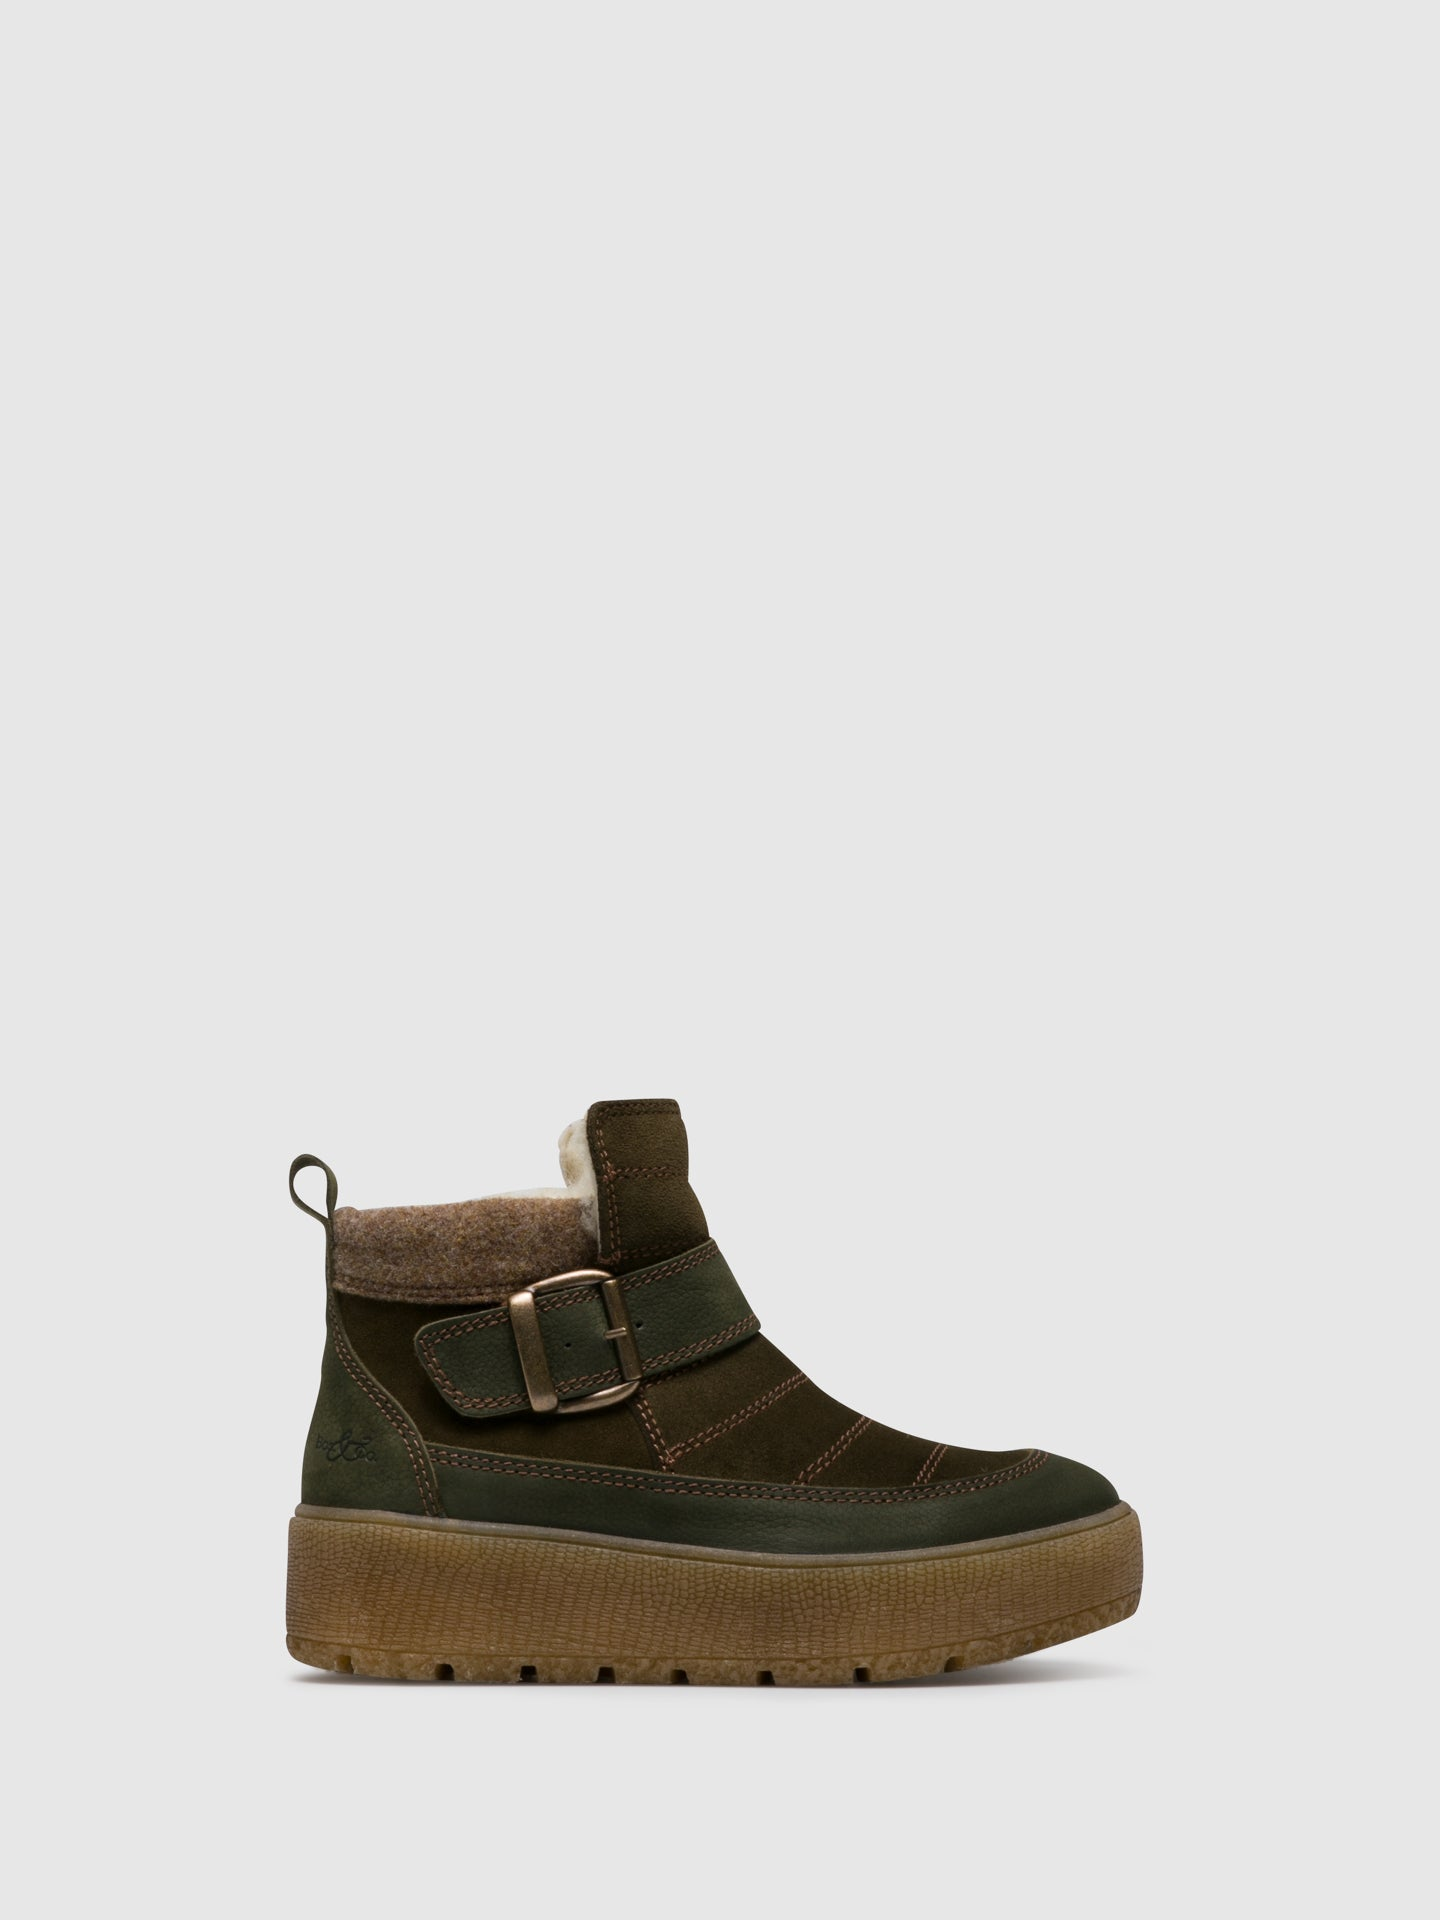 Bos&Co Green Zip Up Ankle Boots